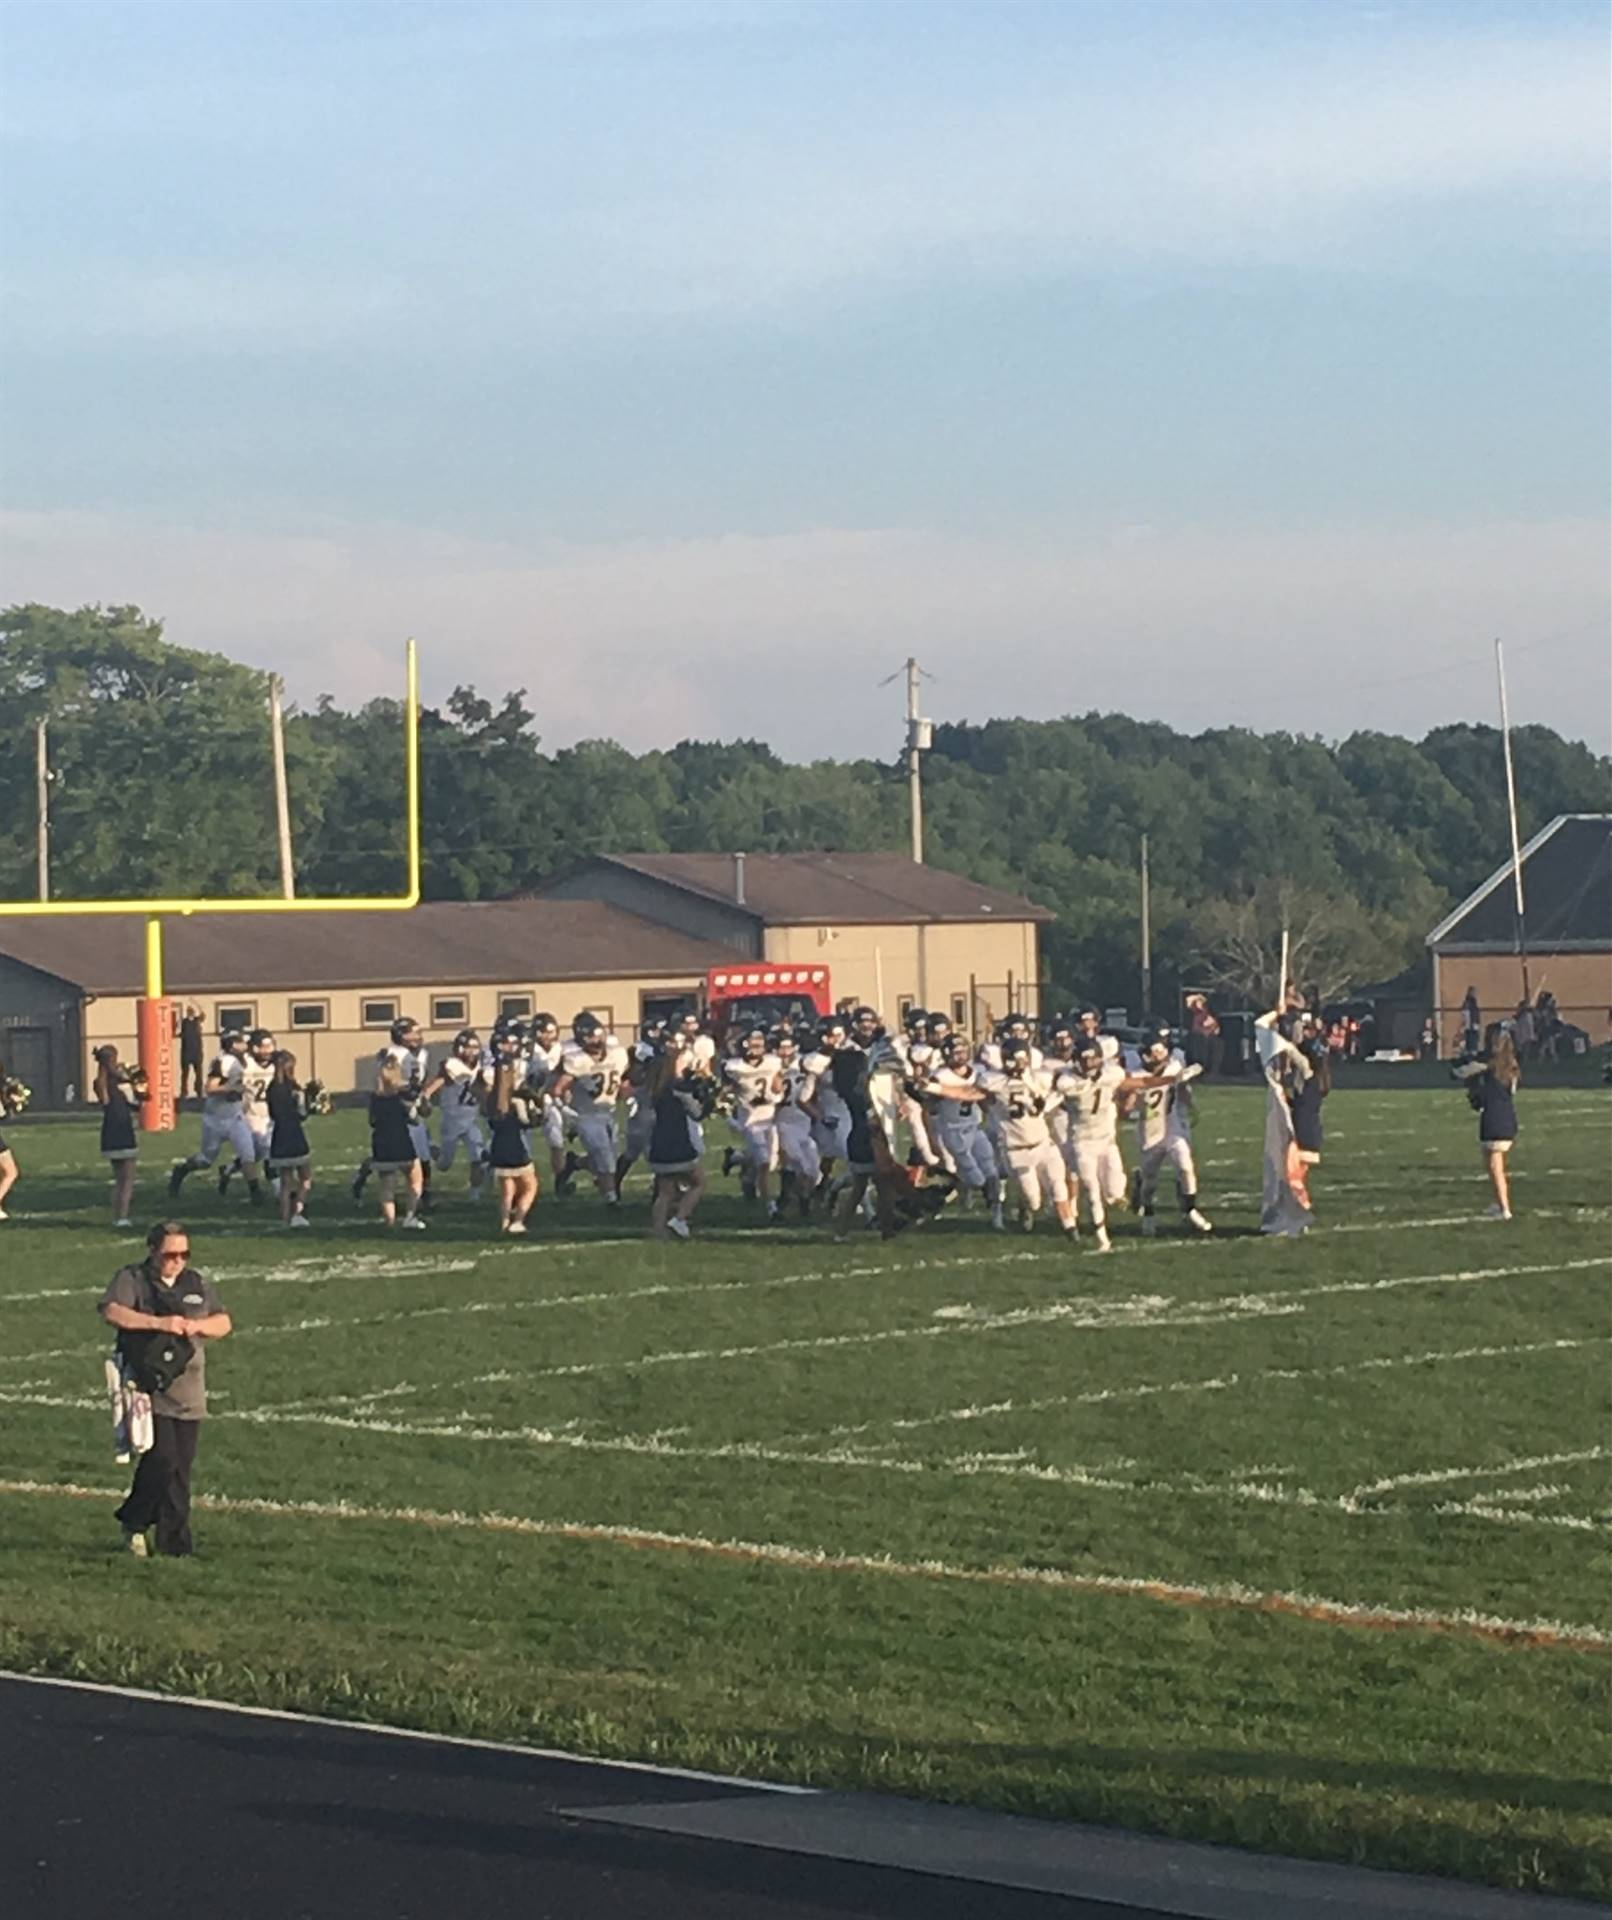 The Brookfield Warrior football team runs on to the field during their Week 2 game against the Sprin